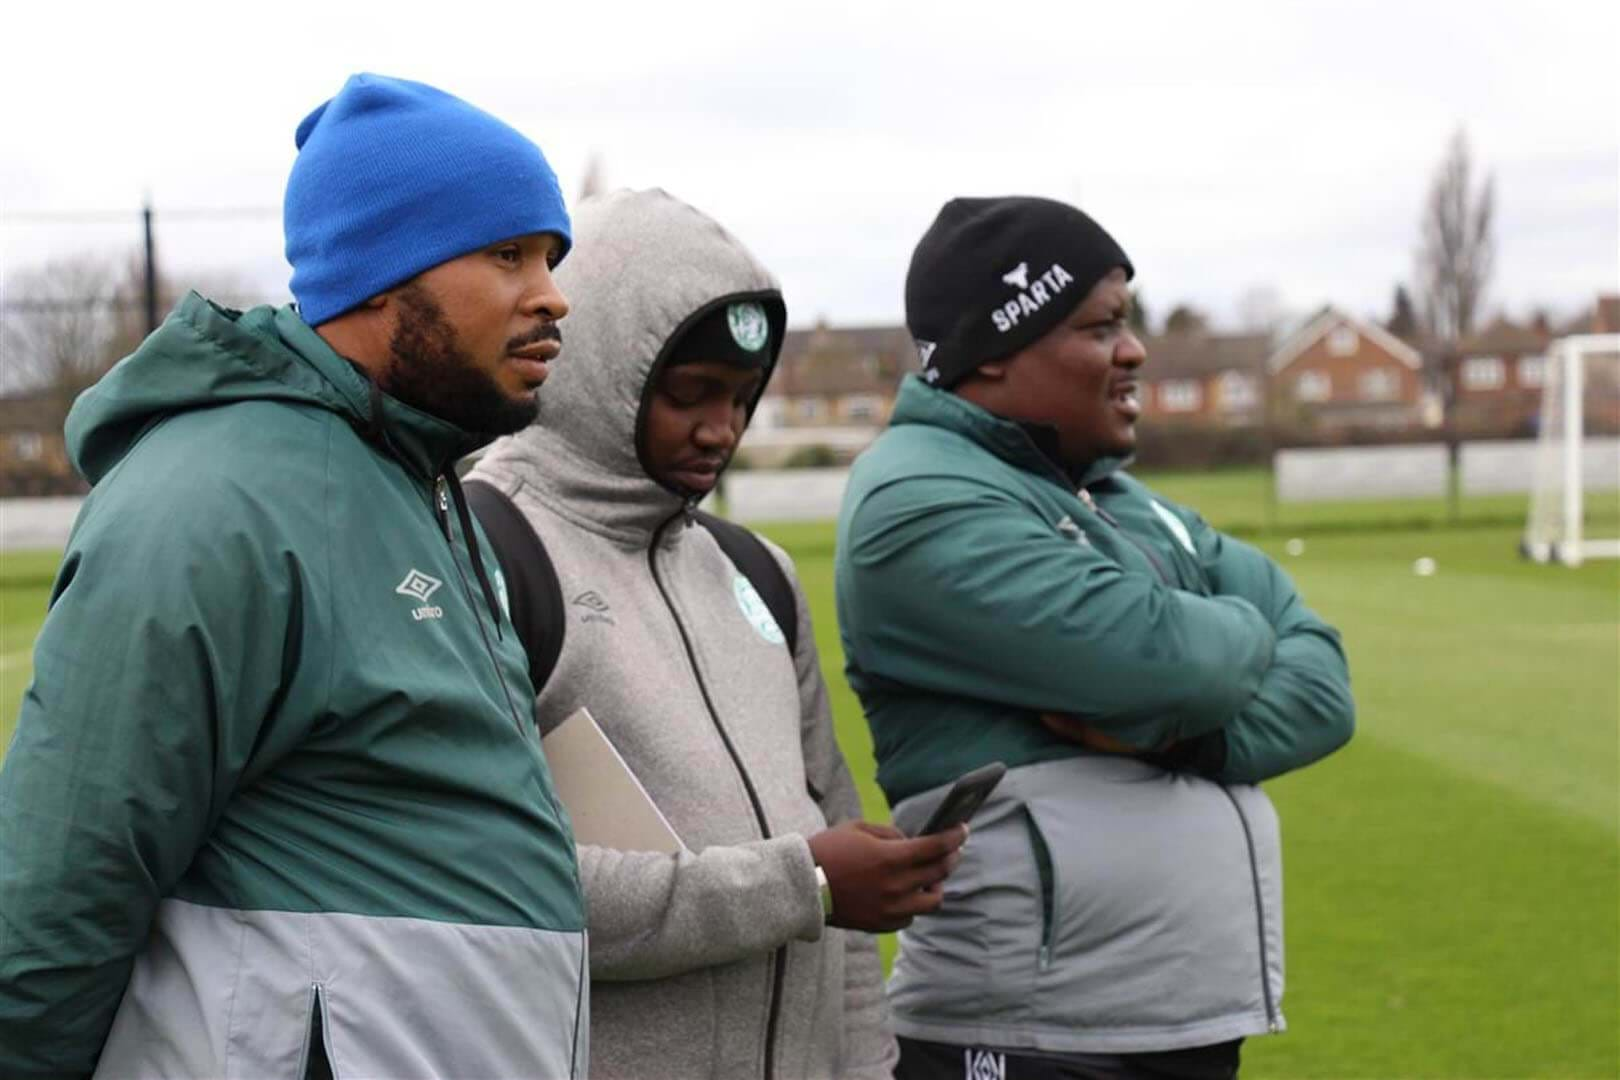 Bloemfontein Celtic coach, Ditheko Mototo is proud of the tactical prowess the team has shown on their London Tour- image